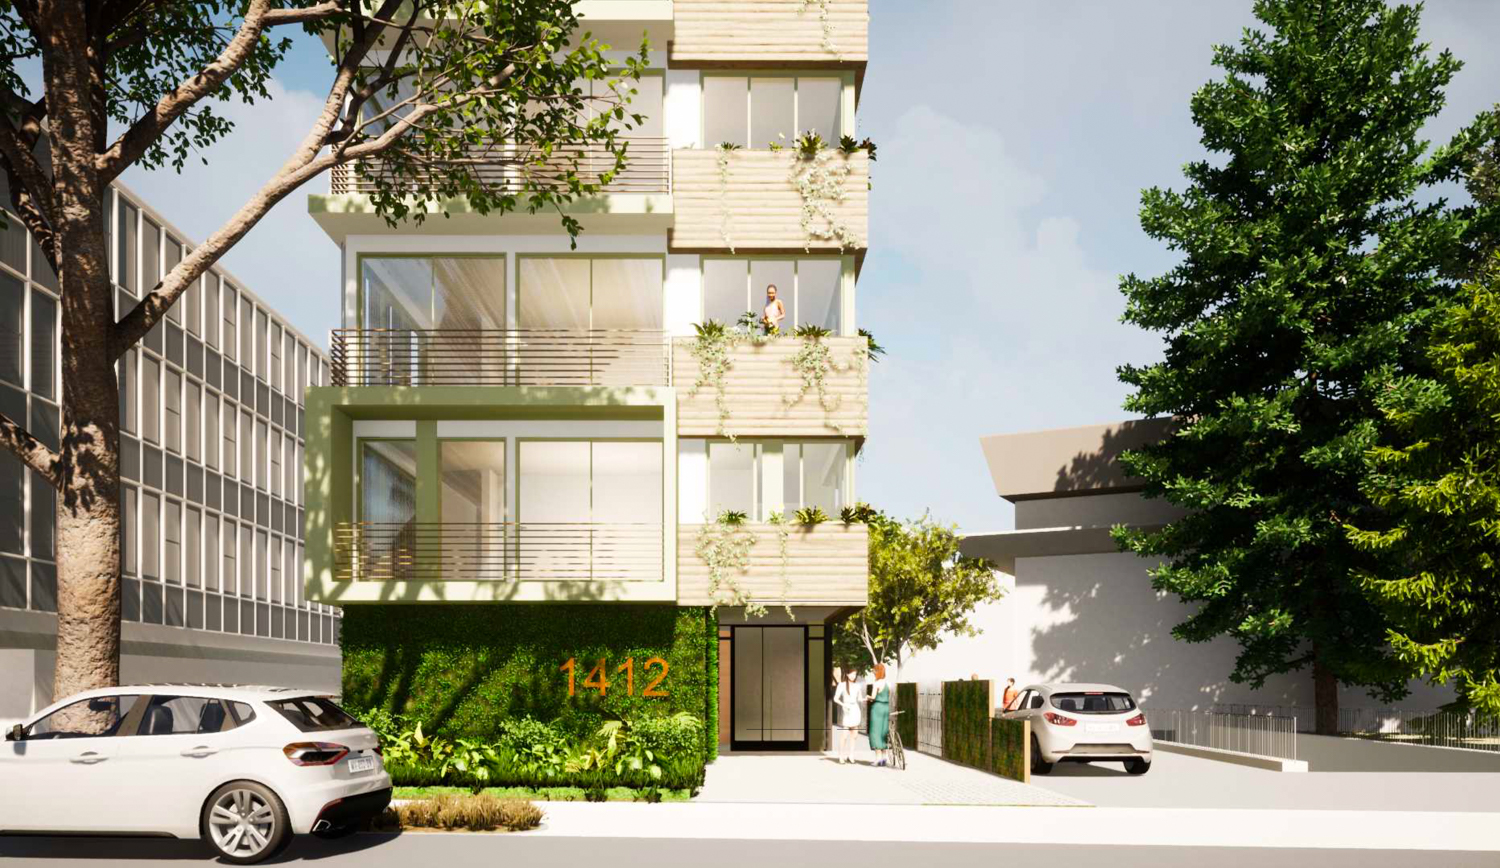 1412 Bellevue Avenue entrance view, rendering by MH Architects